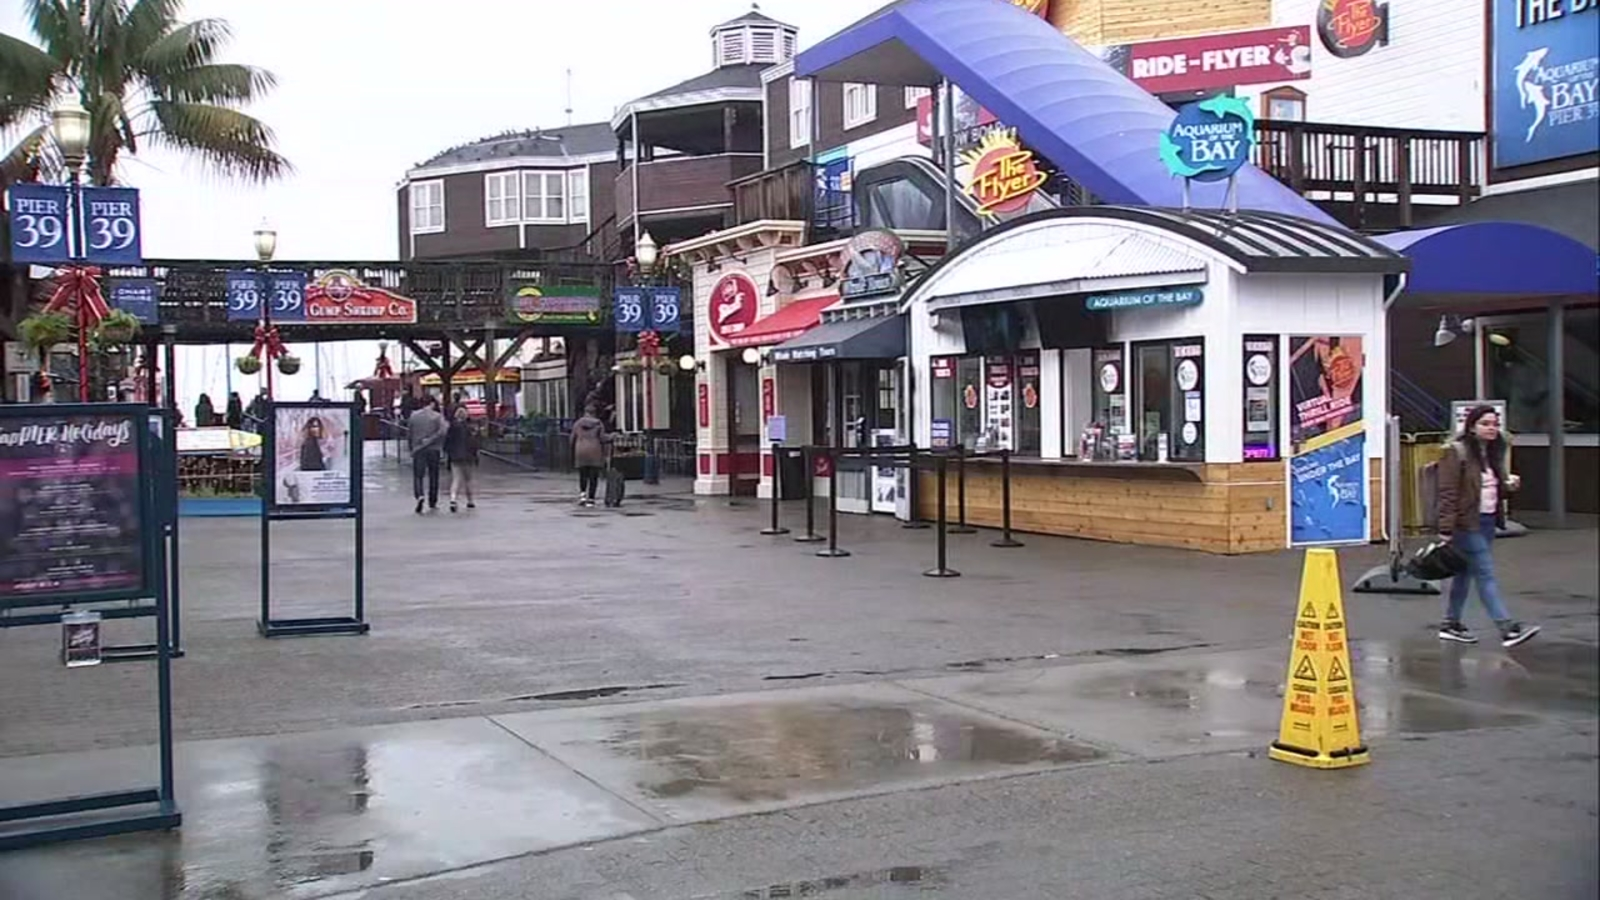 Pier 39 business owner to San Francisco leaders: Stop ignoring issues of homelessness, dirty streets